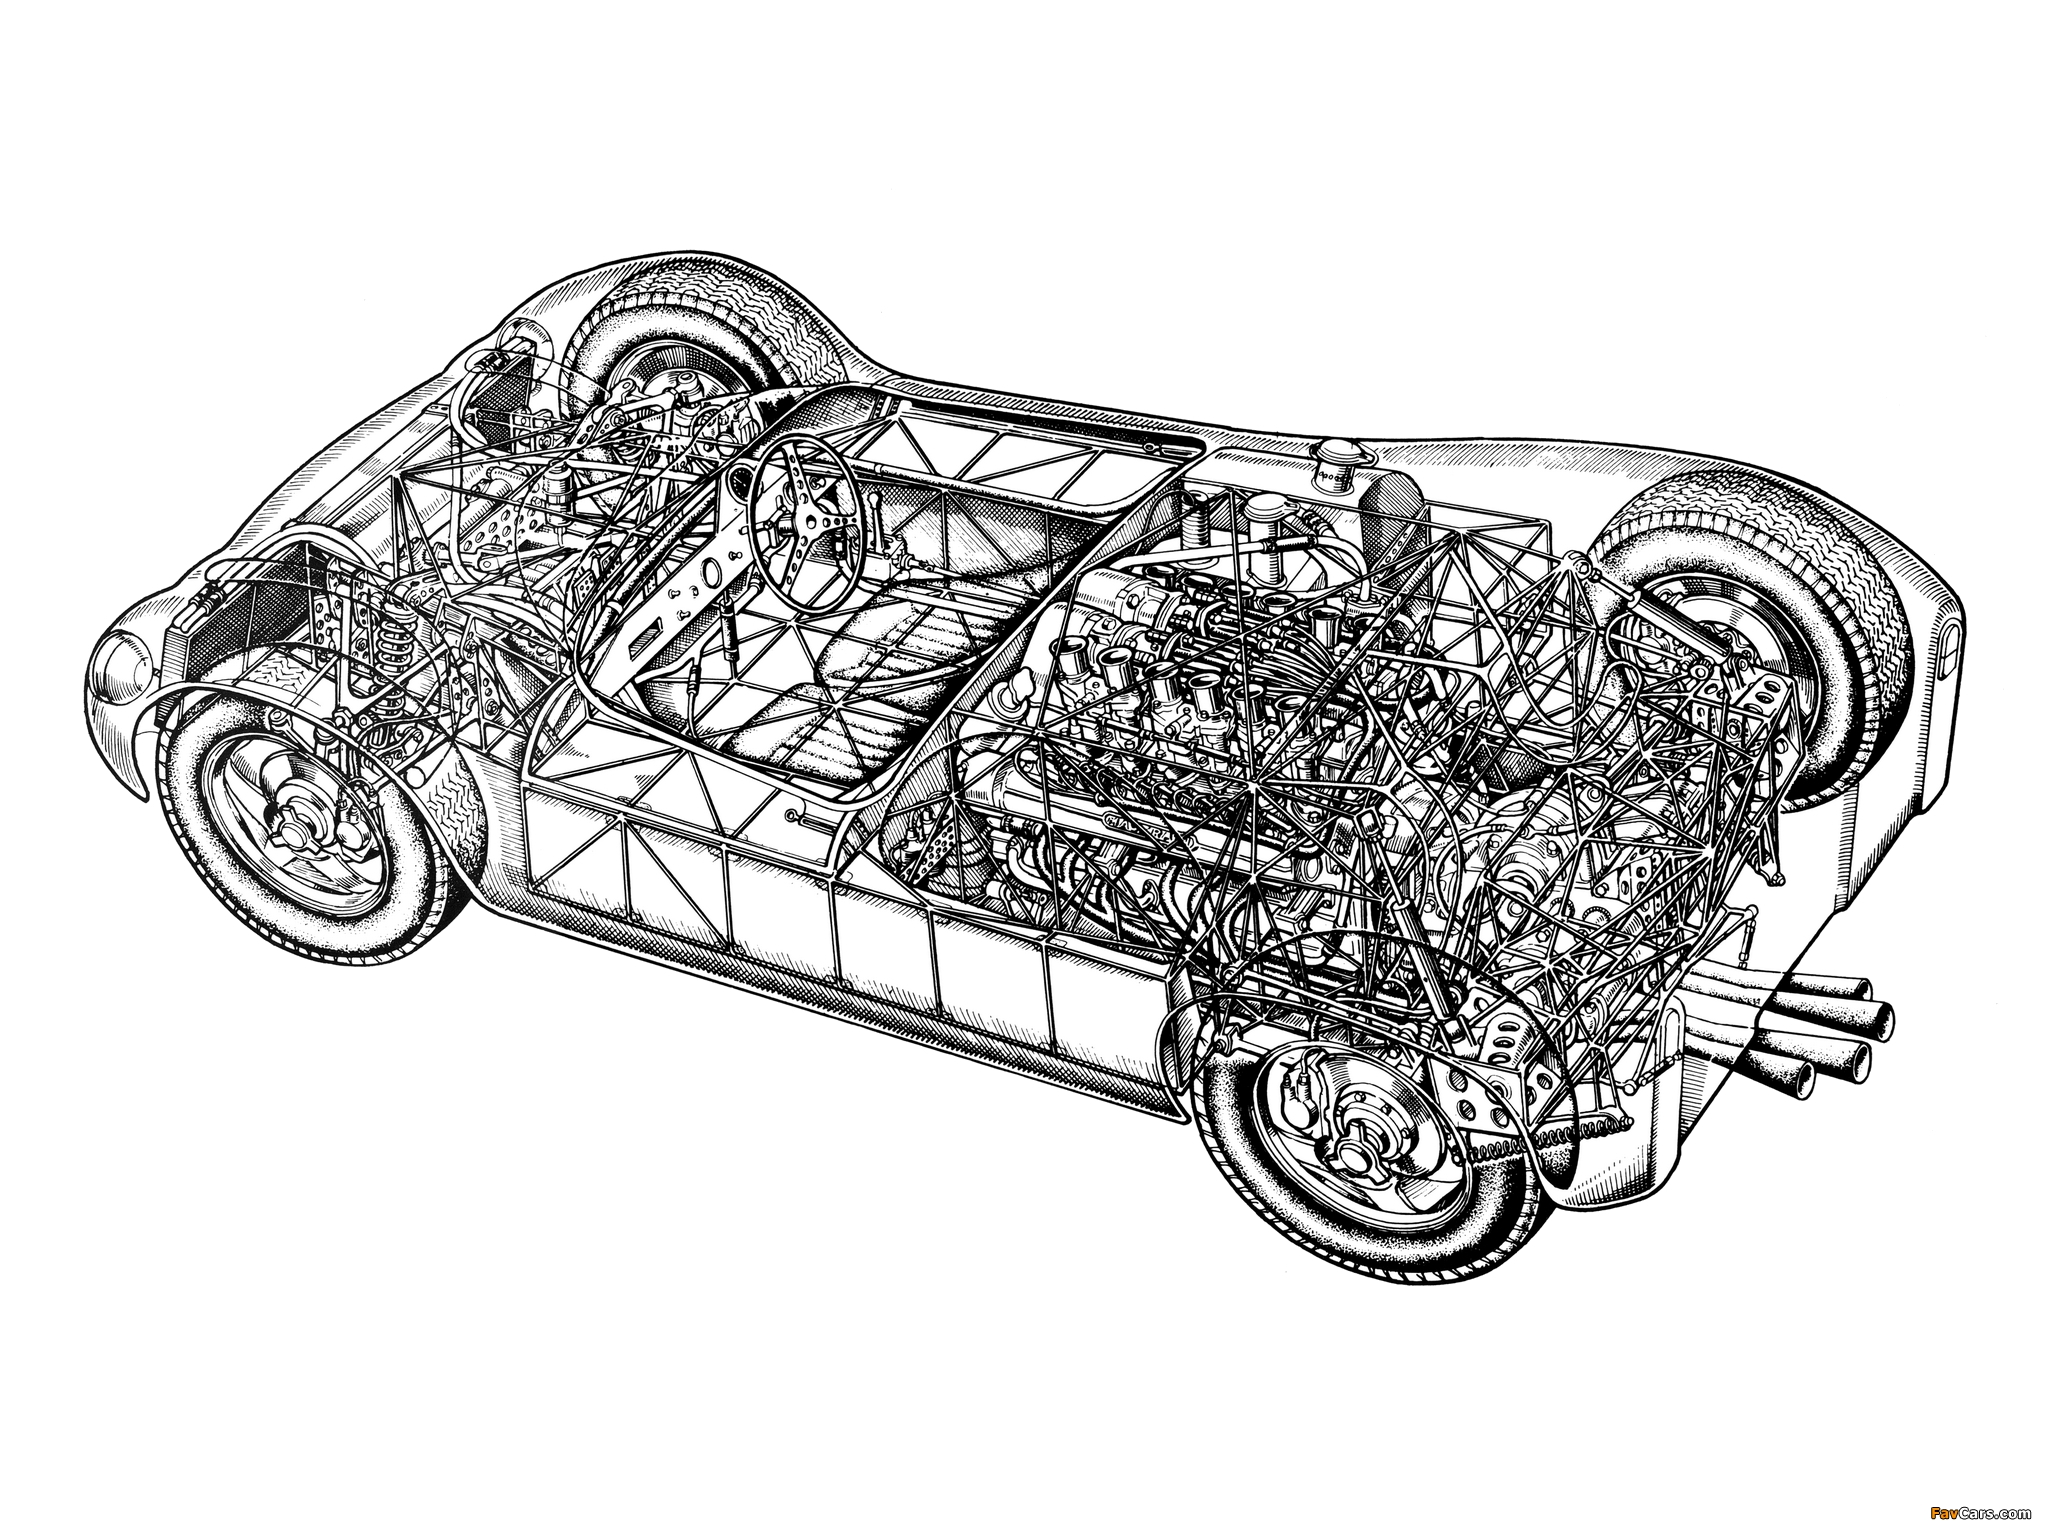 wallpapers_maserati_birdcage_1961_1.jpg